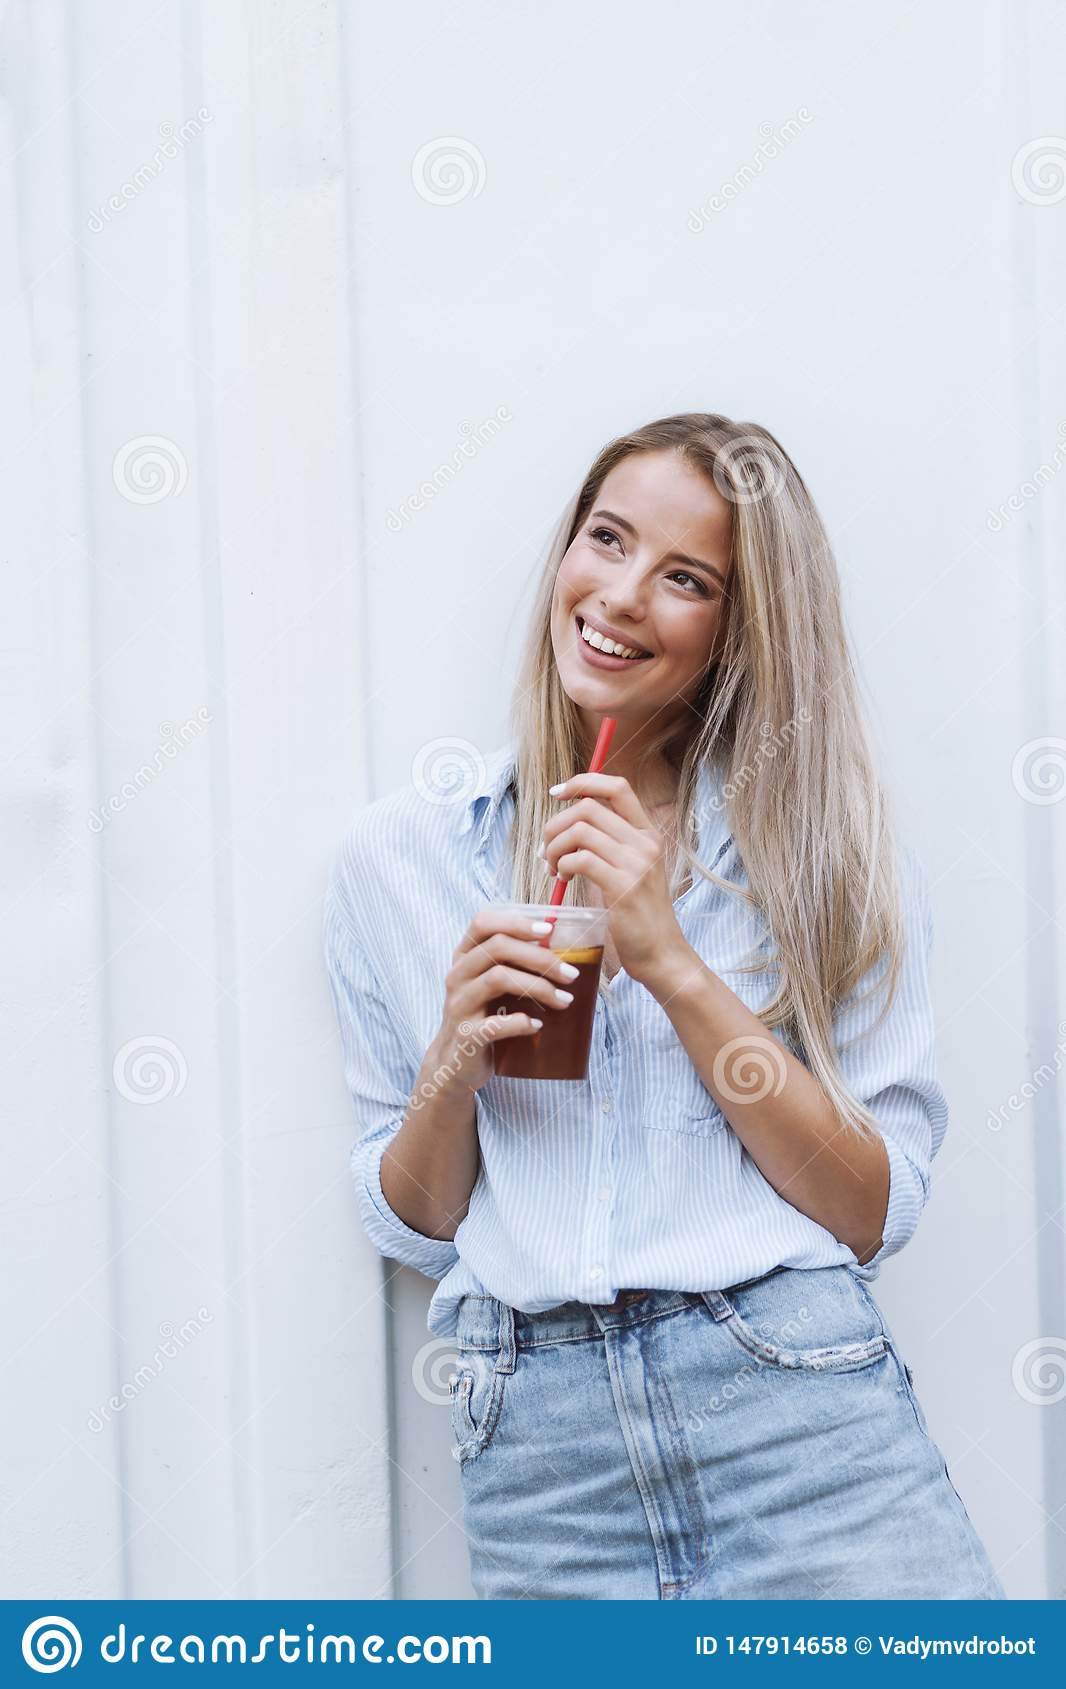 Smiling young girl drinking juice while standing